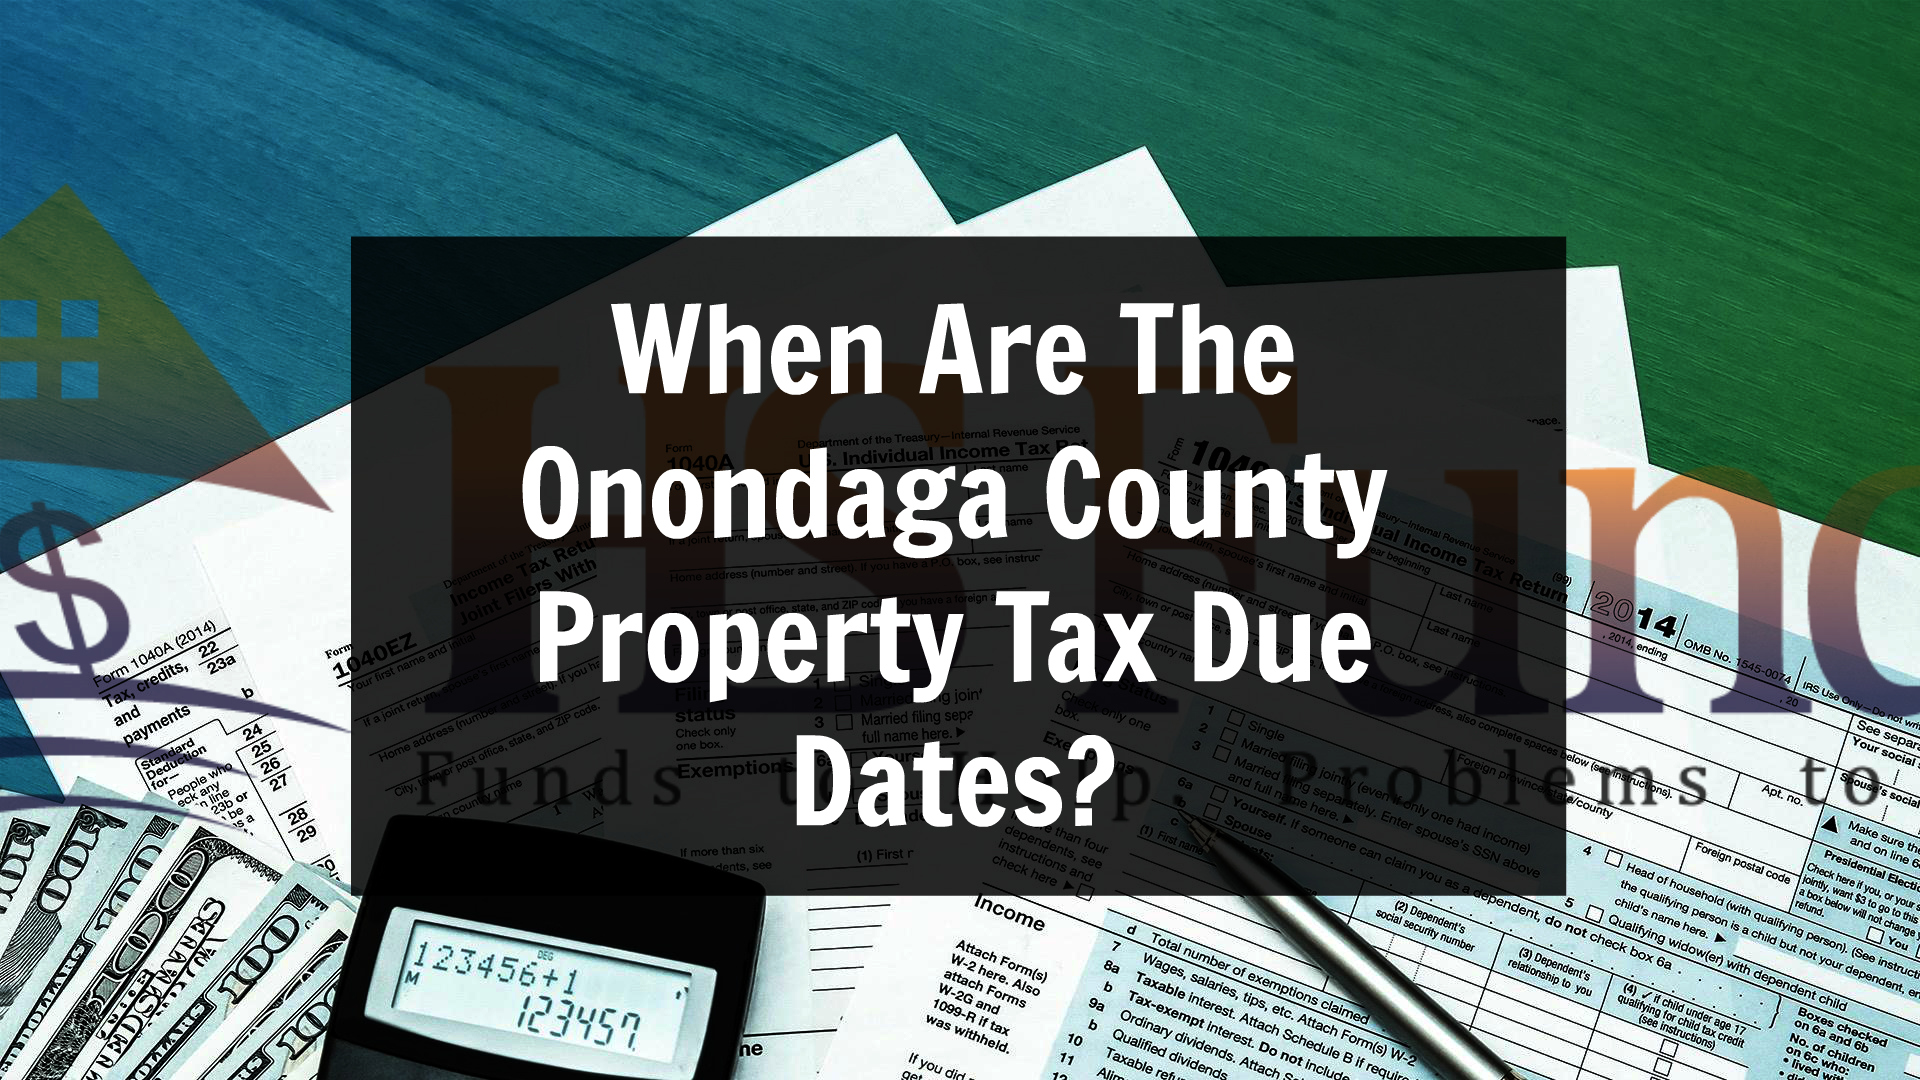 When are the onondaga county property tax due dates we buy houses when are the onondaga county property tax due dates we buy houses syracuse ny cash for homes hs property funds falaconquin